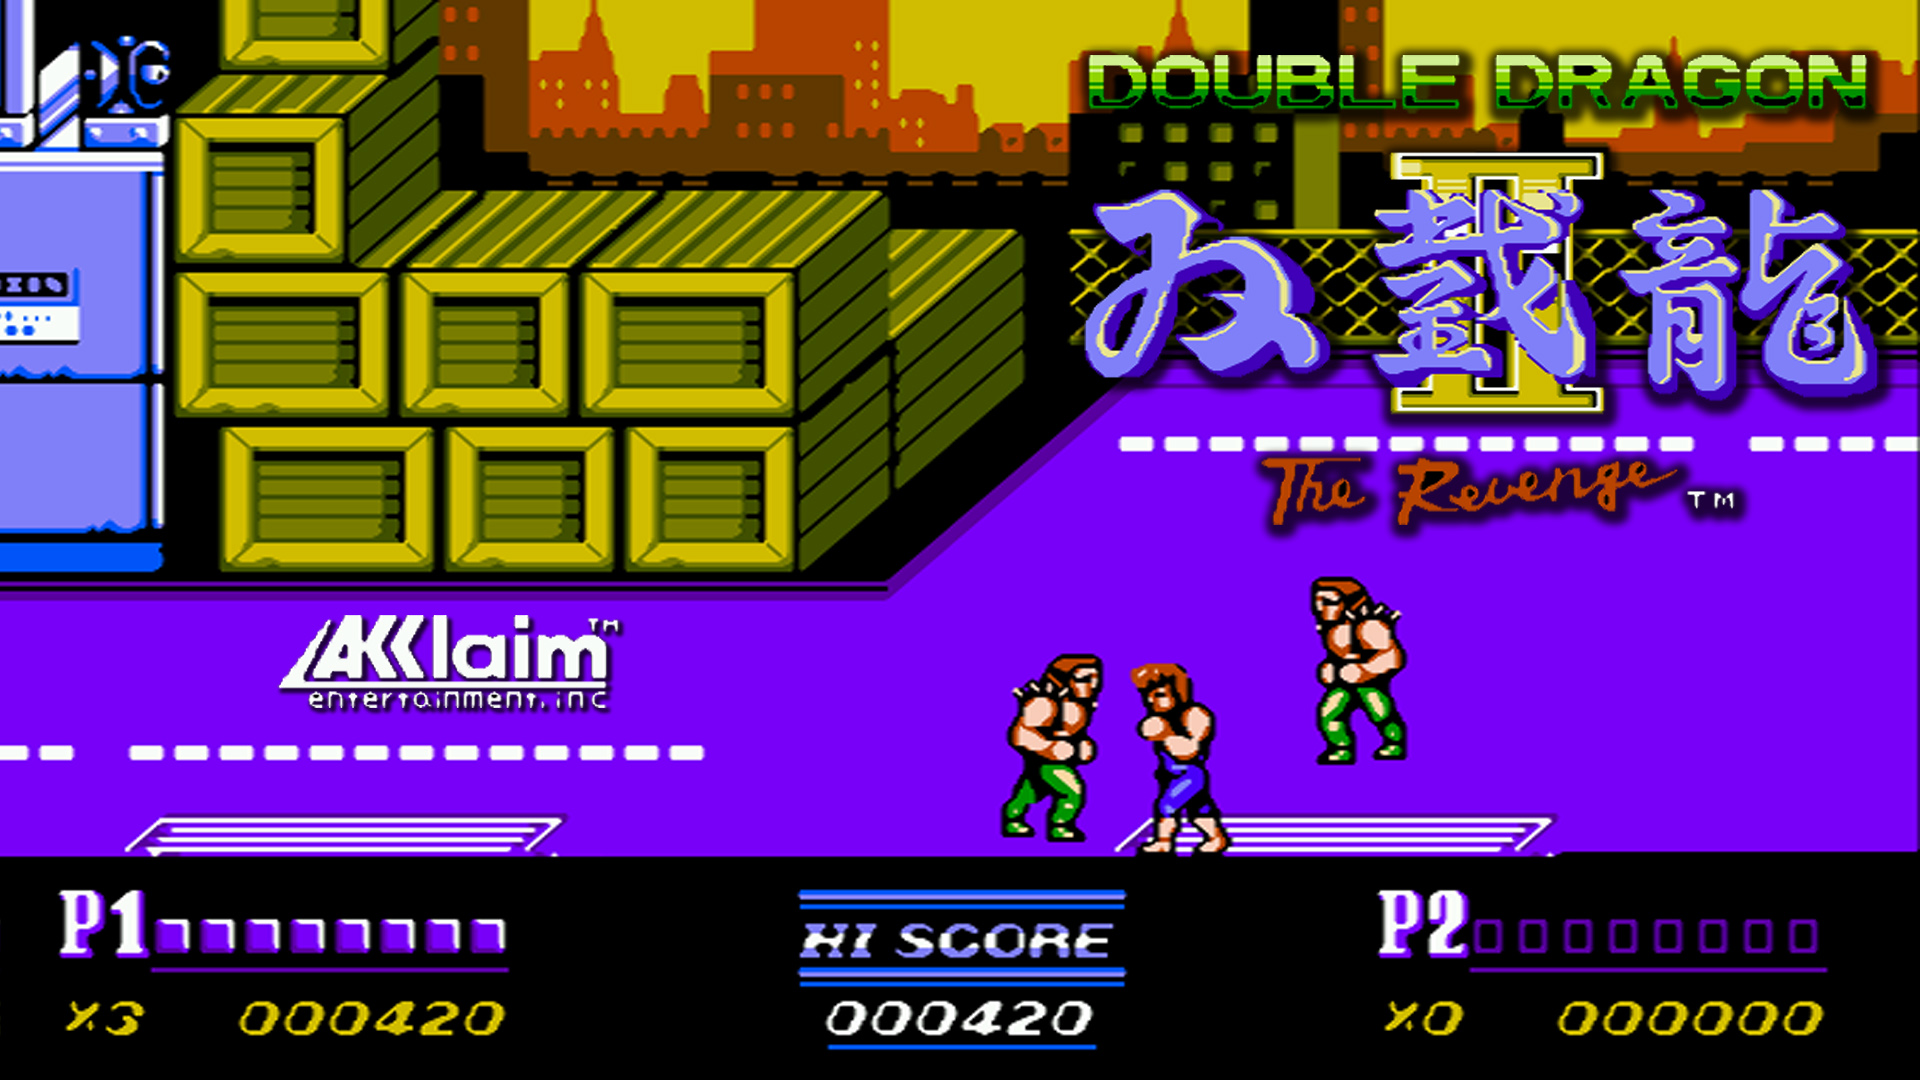 Double Dragon Ii The Revenge Fondo De Pantalla Hd Fondo